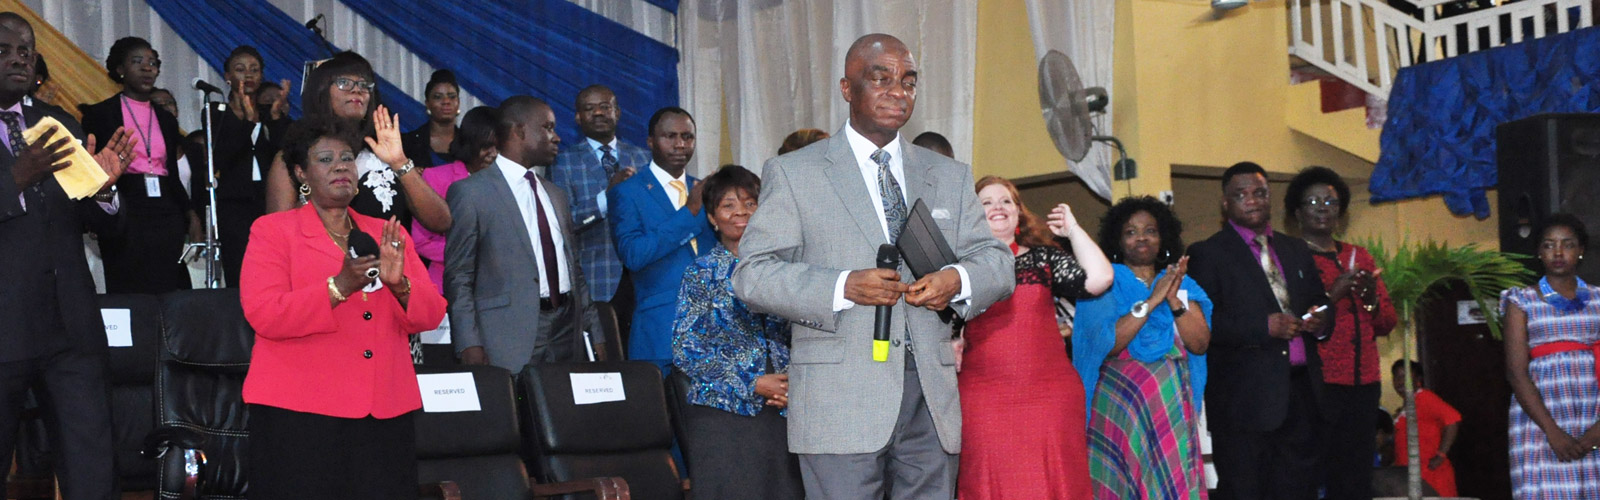 BENSON-IDAHOSA-UNIVERSITY-RECEIVES-BISHOP-DAVID-OYEDEPO